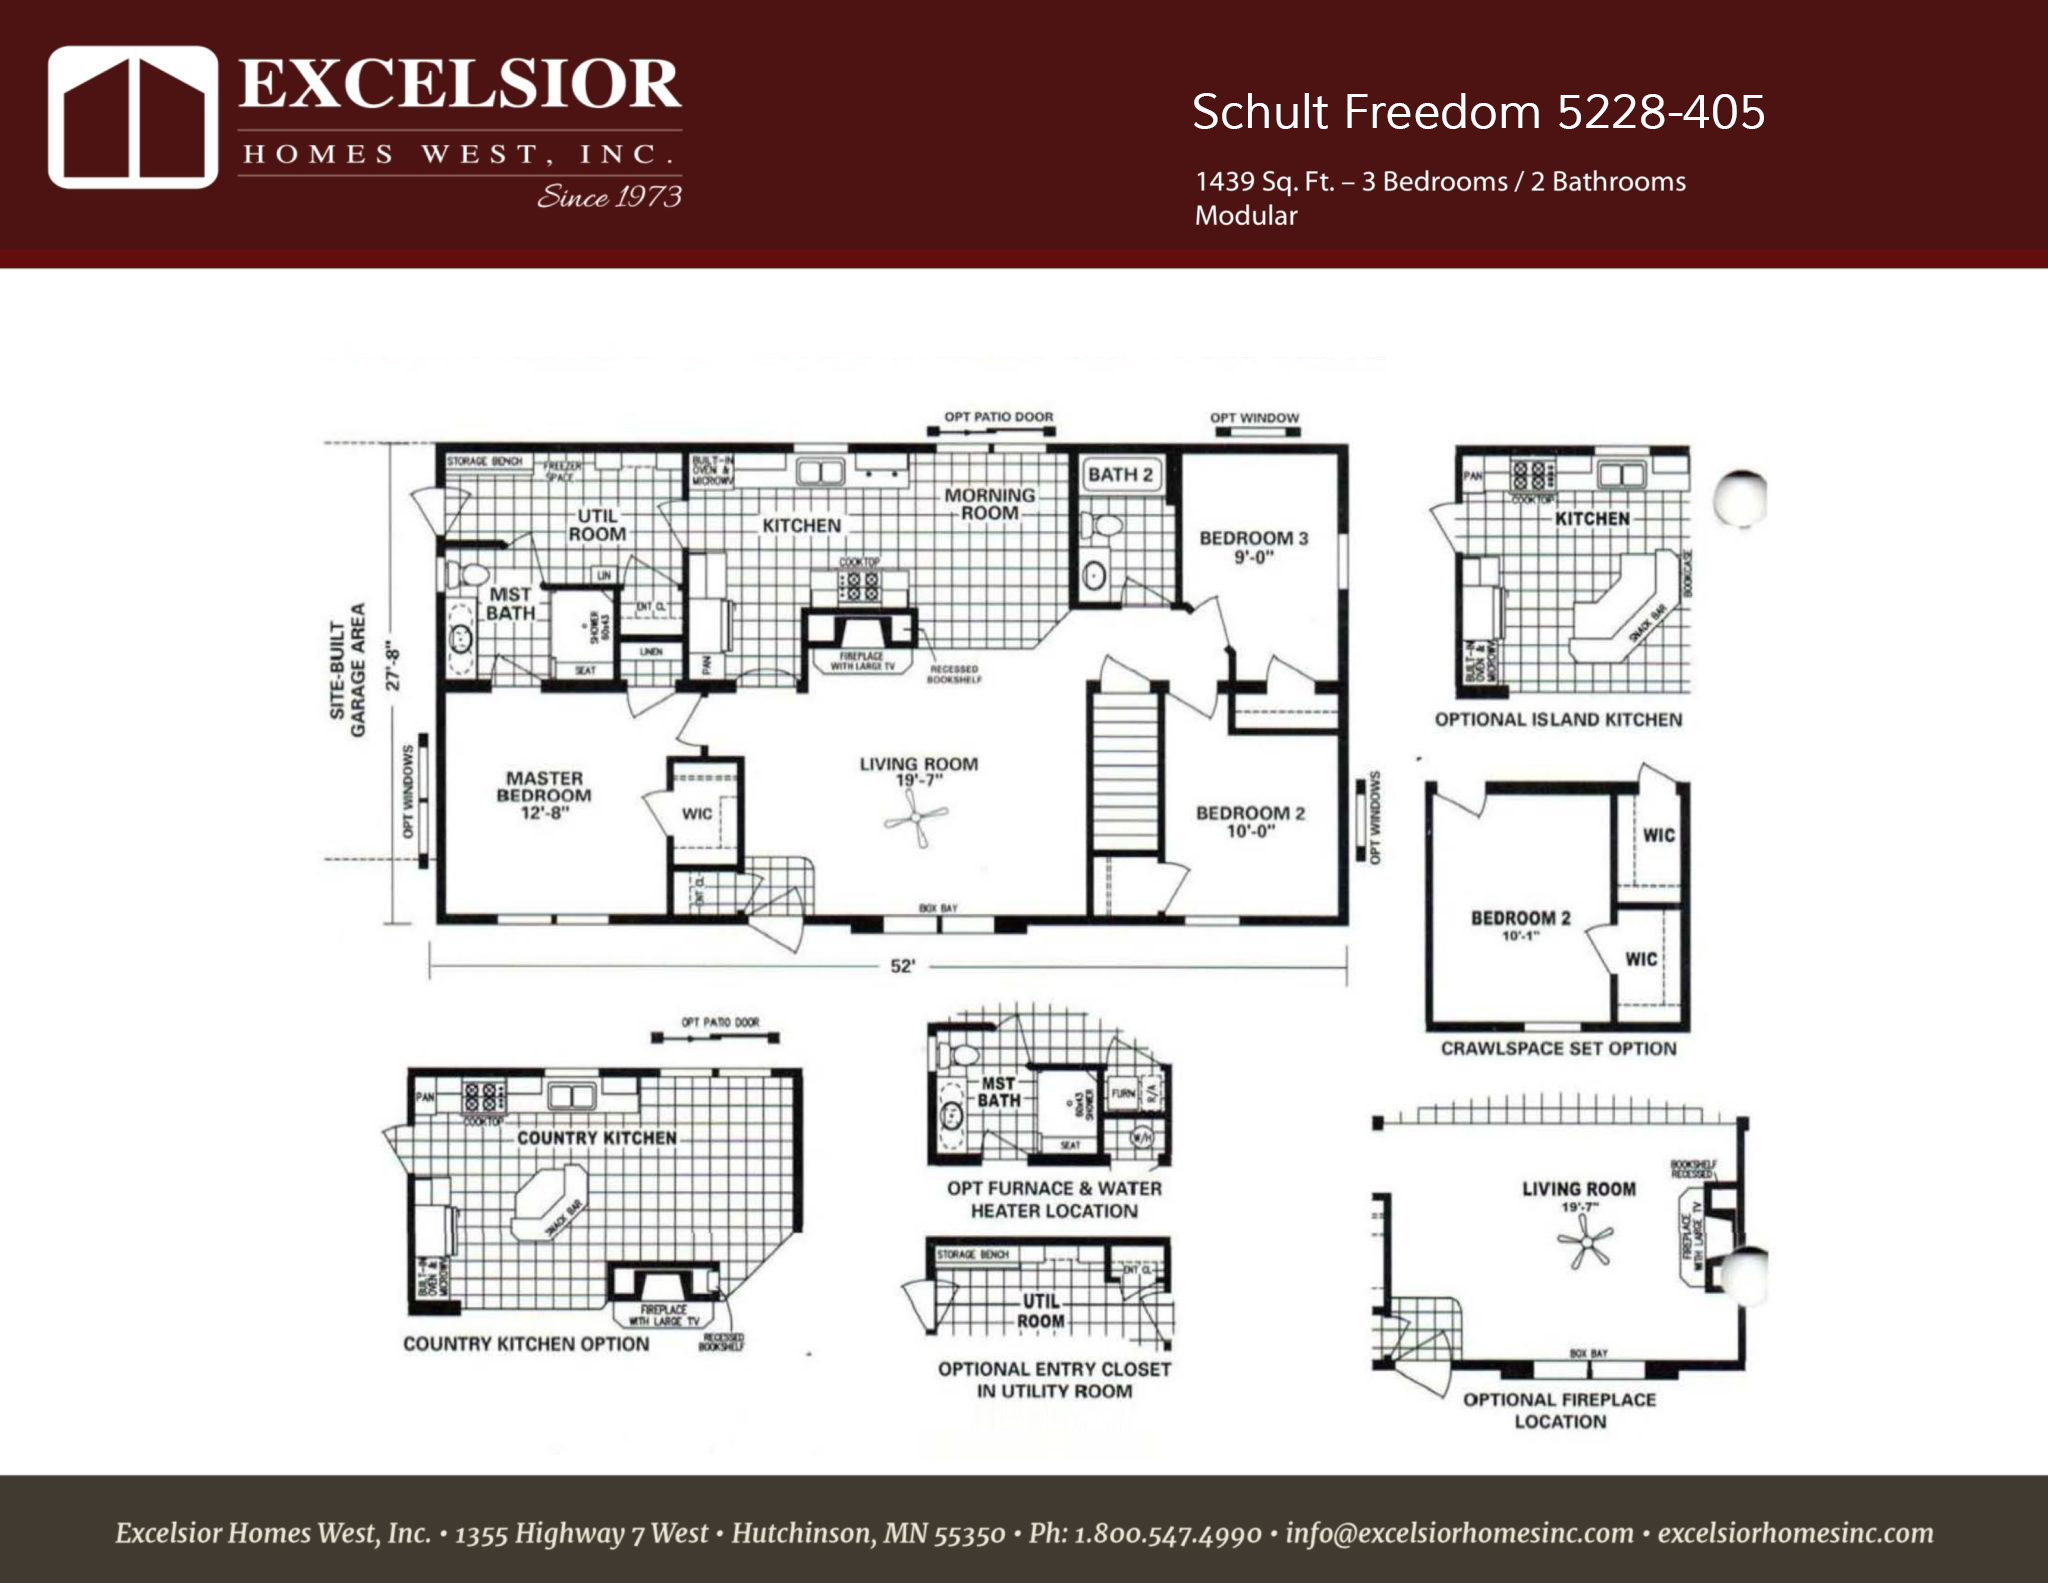 Schult Freedom 405 ModularManufactured Excelsior Homes